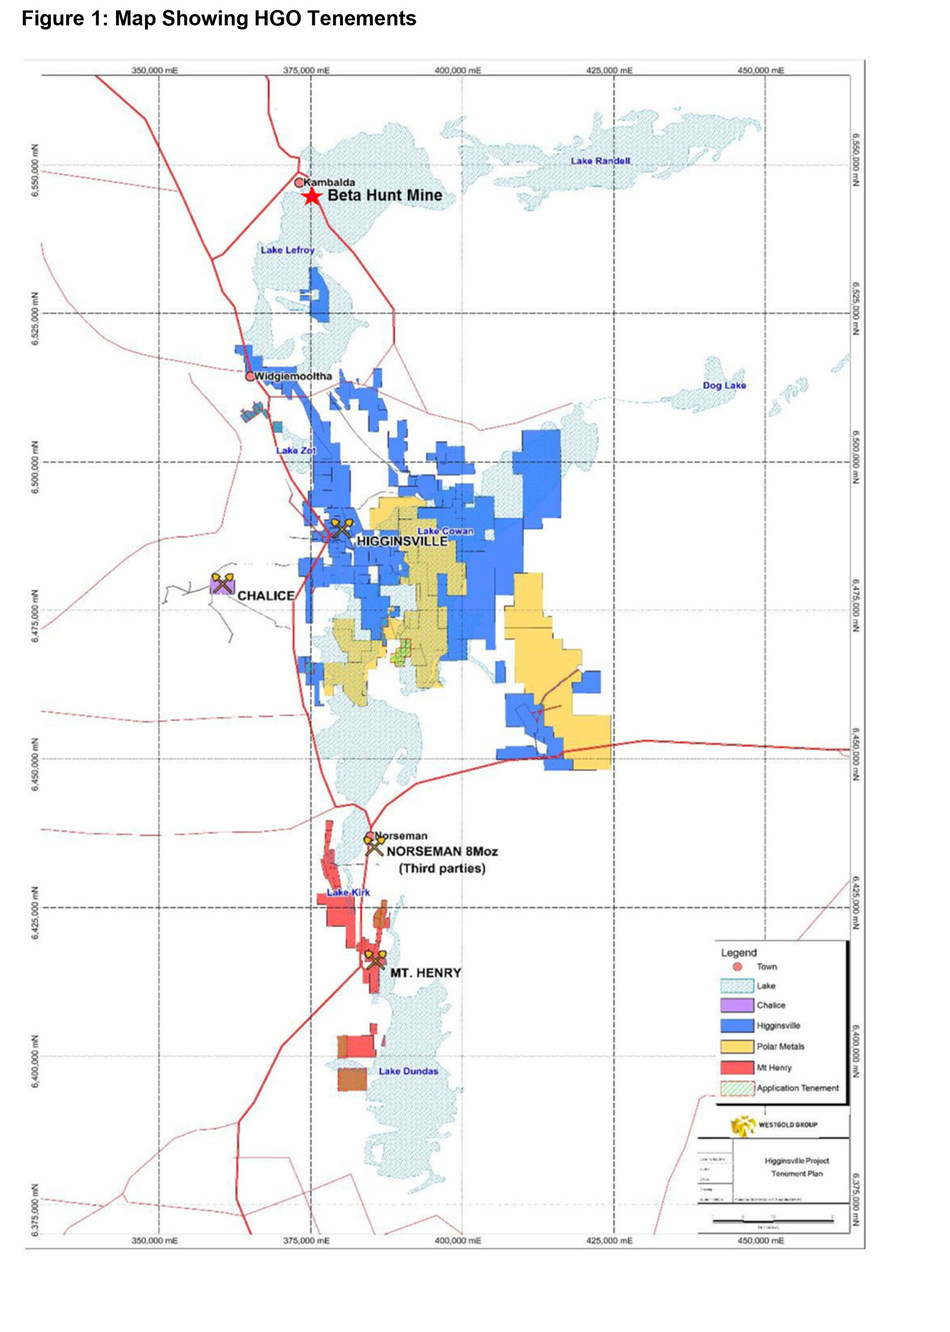 Figure 1: Map Showing HGO Tenements (CNW Group/RNC Minerals)